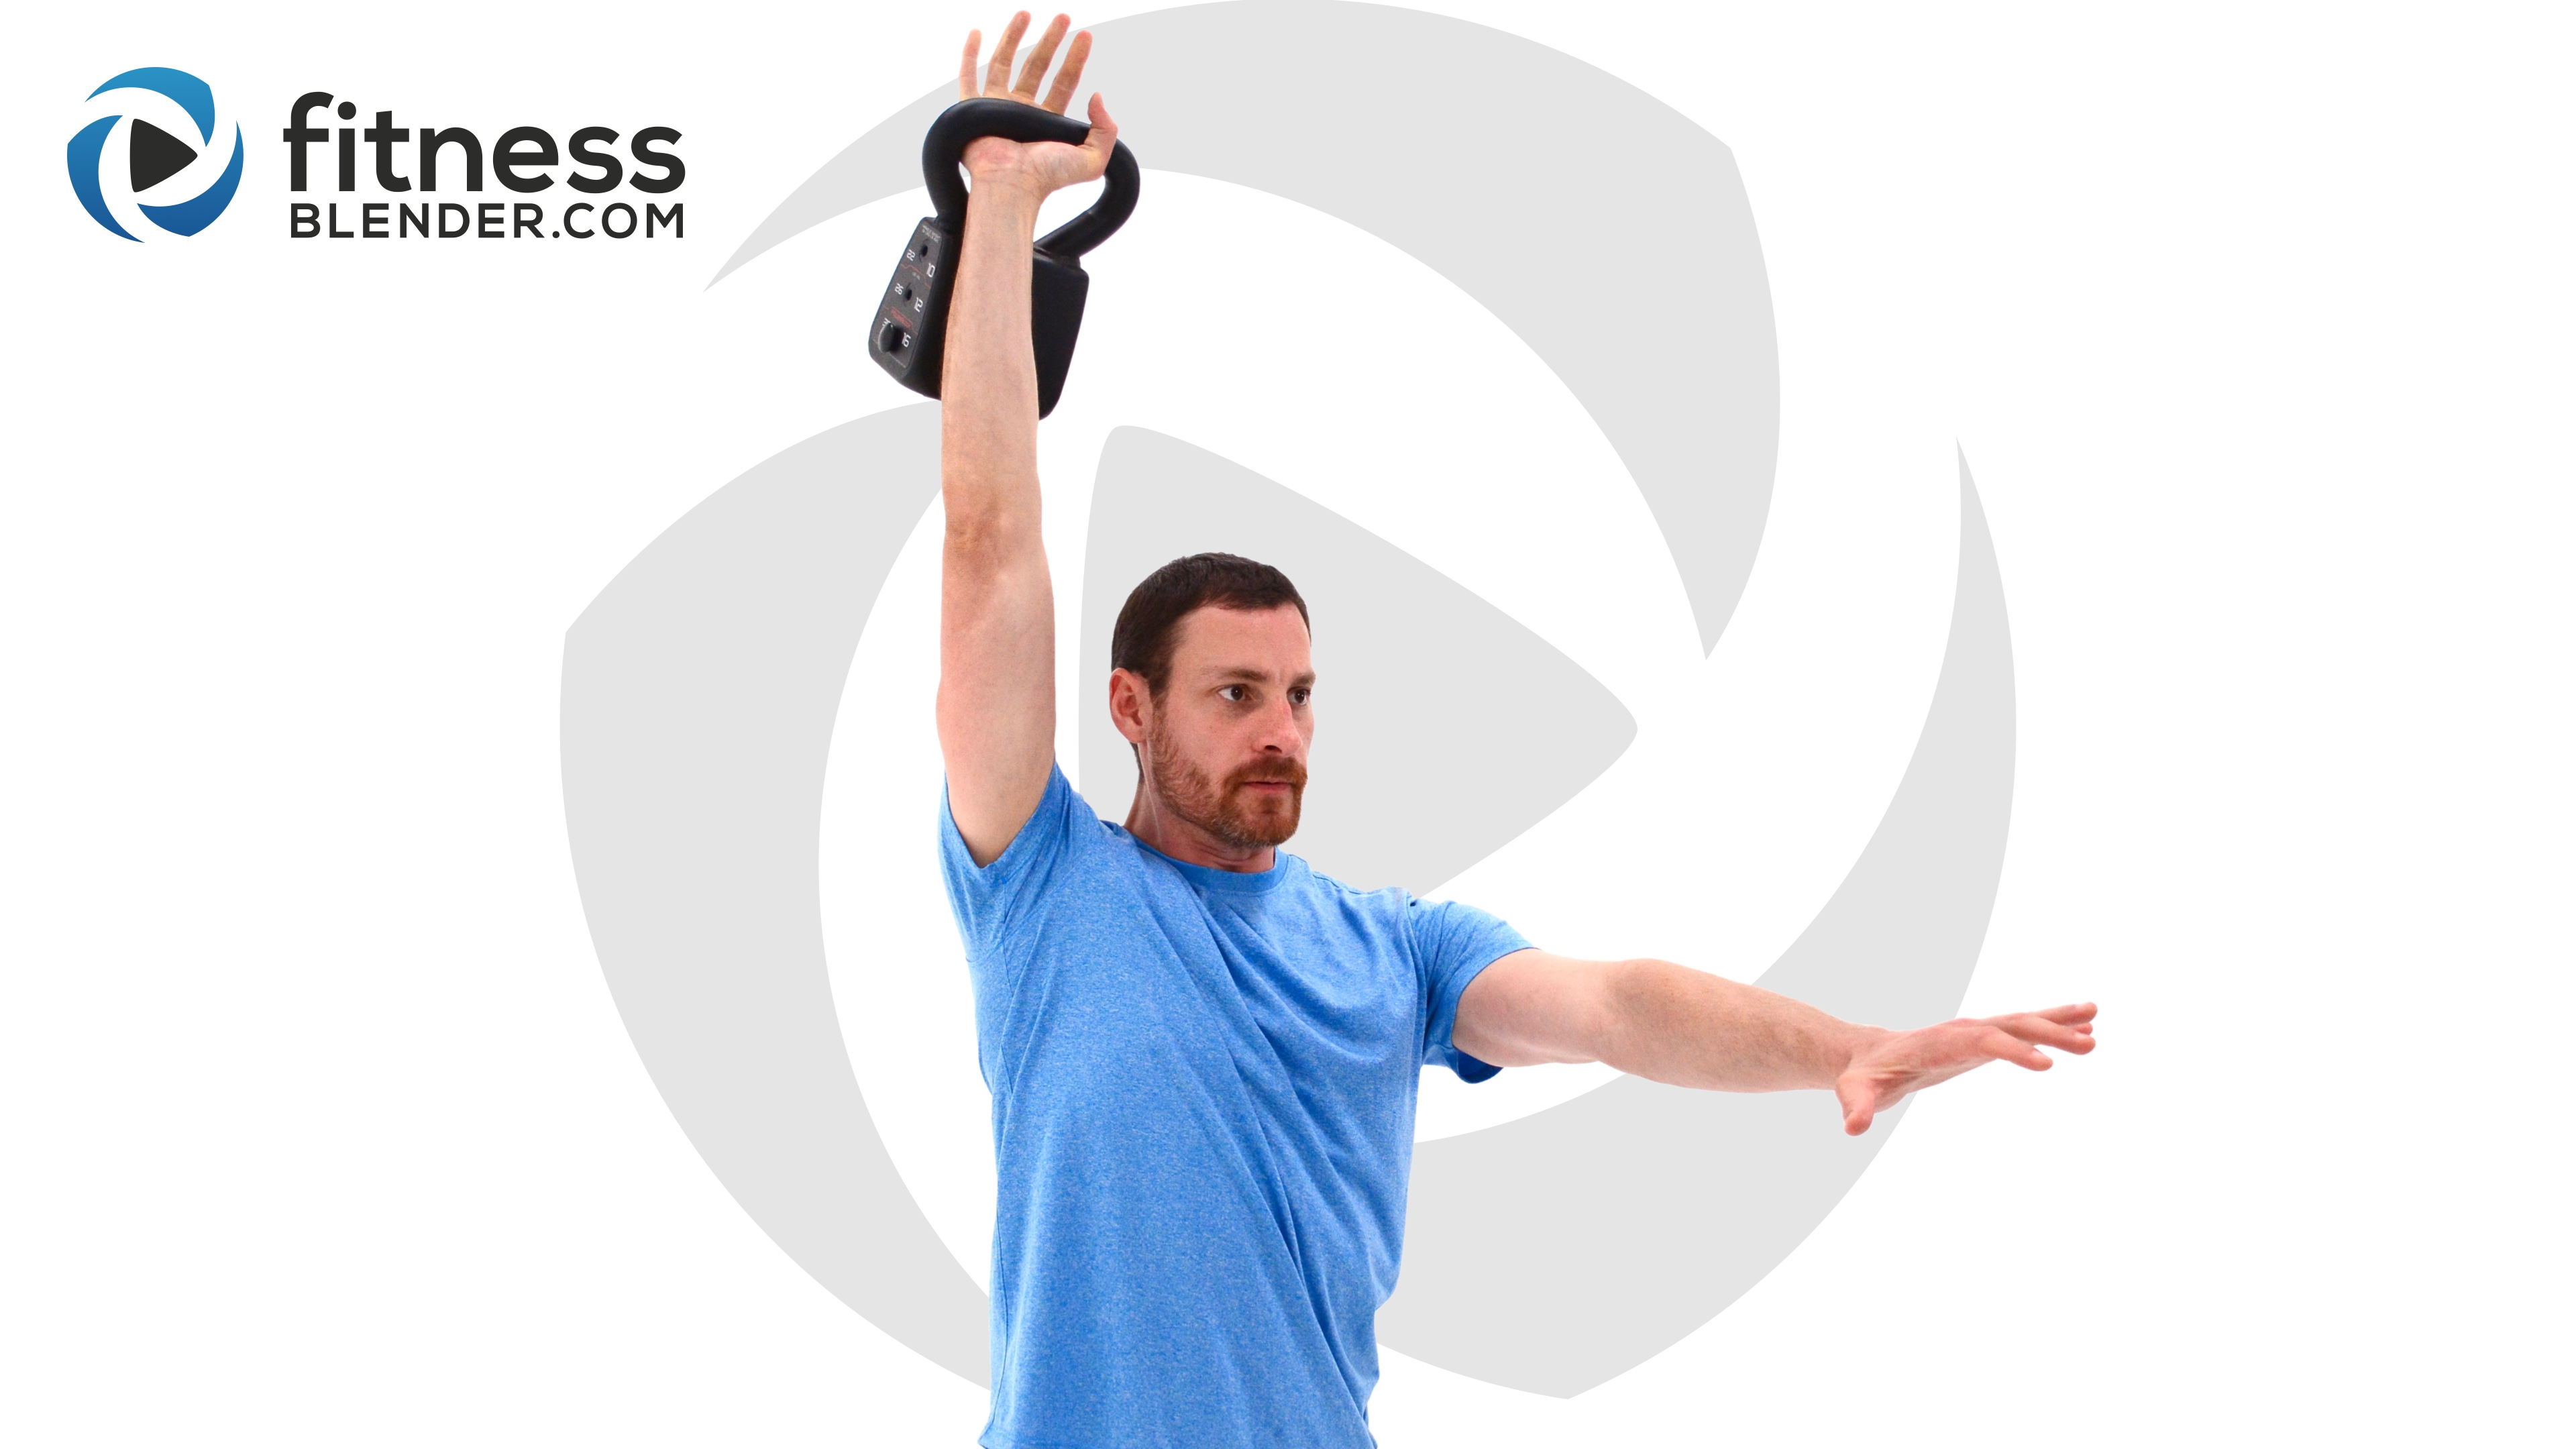 image regarding Printable Kettlebell Workout called 45 Moment Amount Entire body Kettlebell Training - Exciting and Complicated Kettlebell Plan